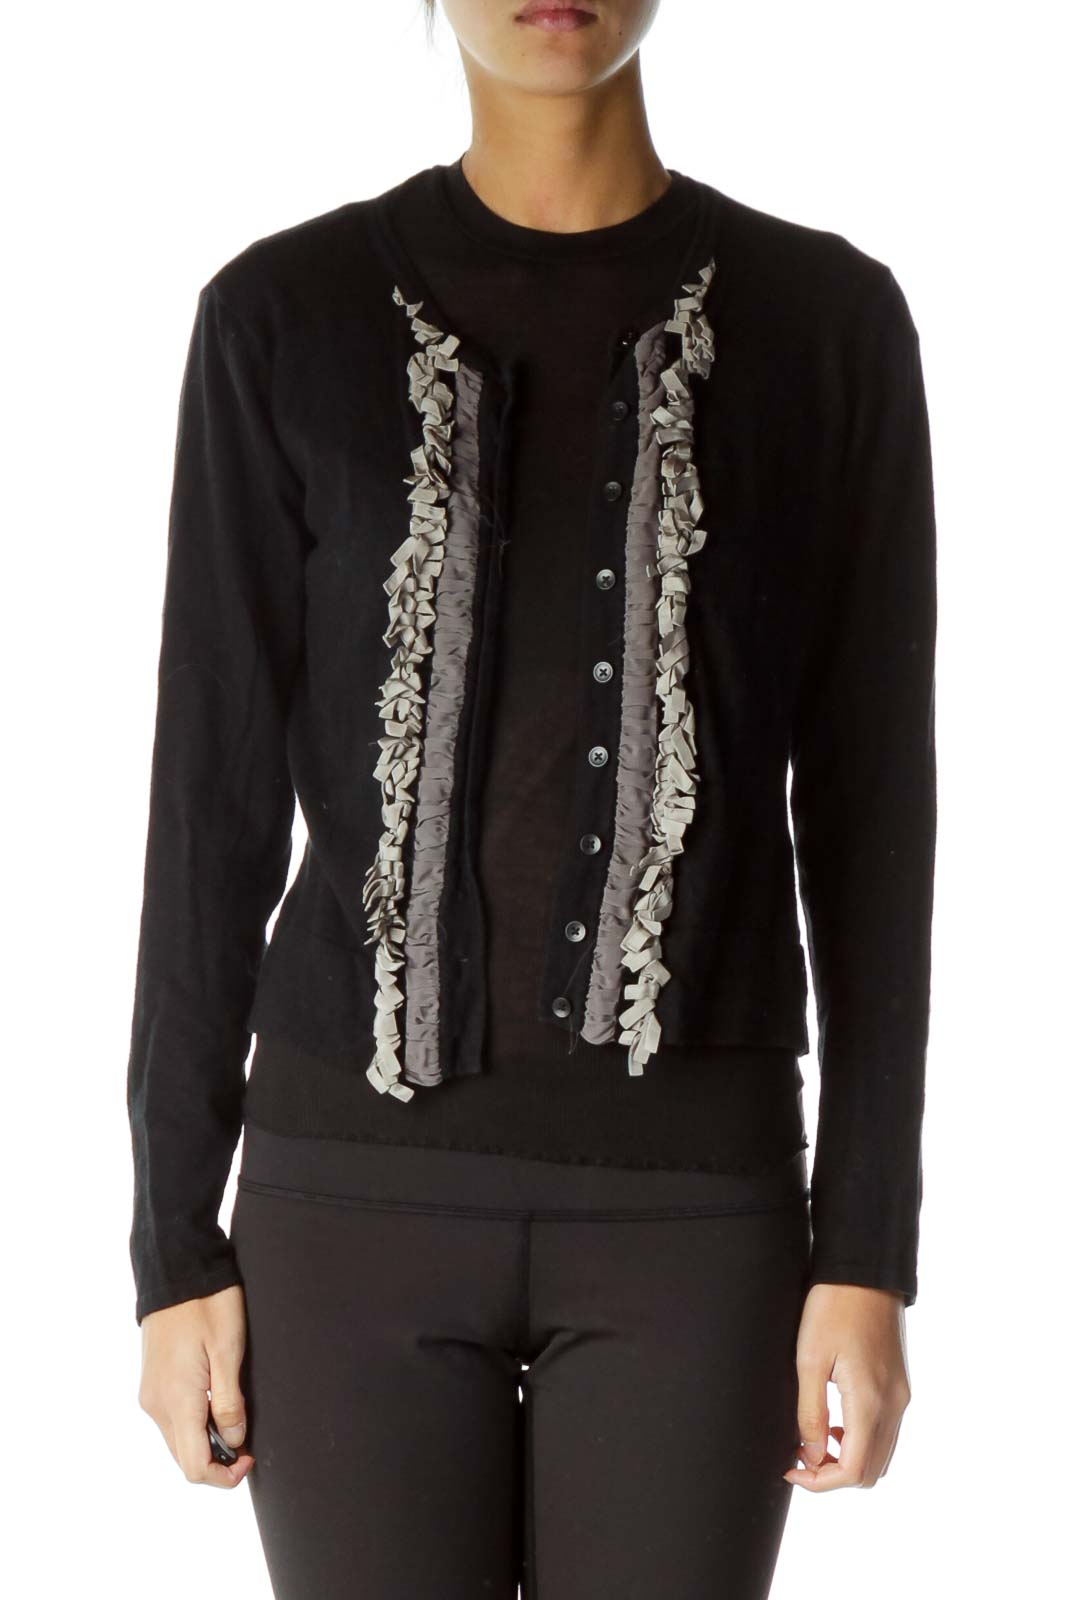 Black Ruffle Detailed Cardigan